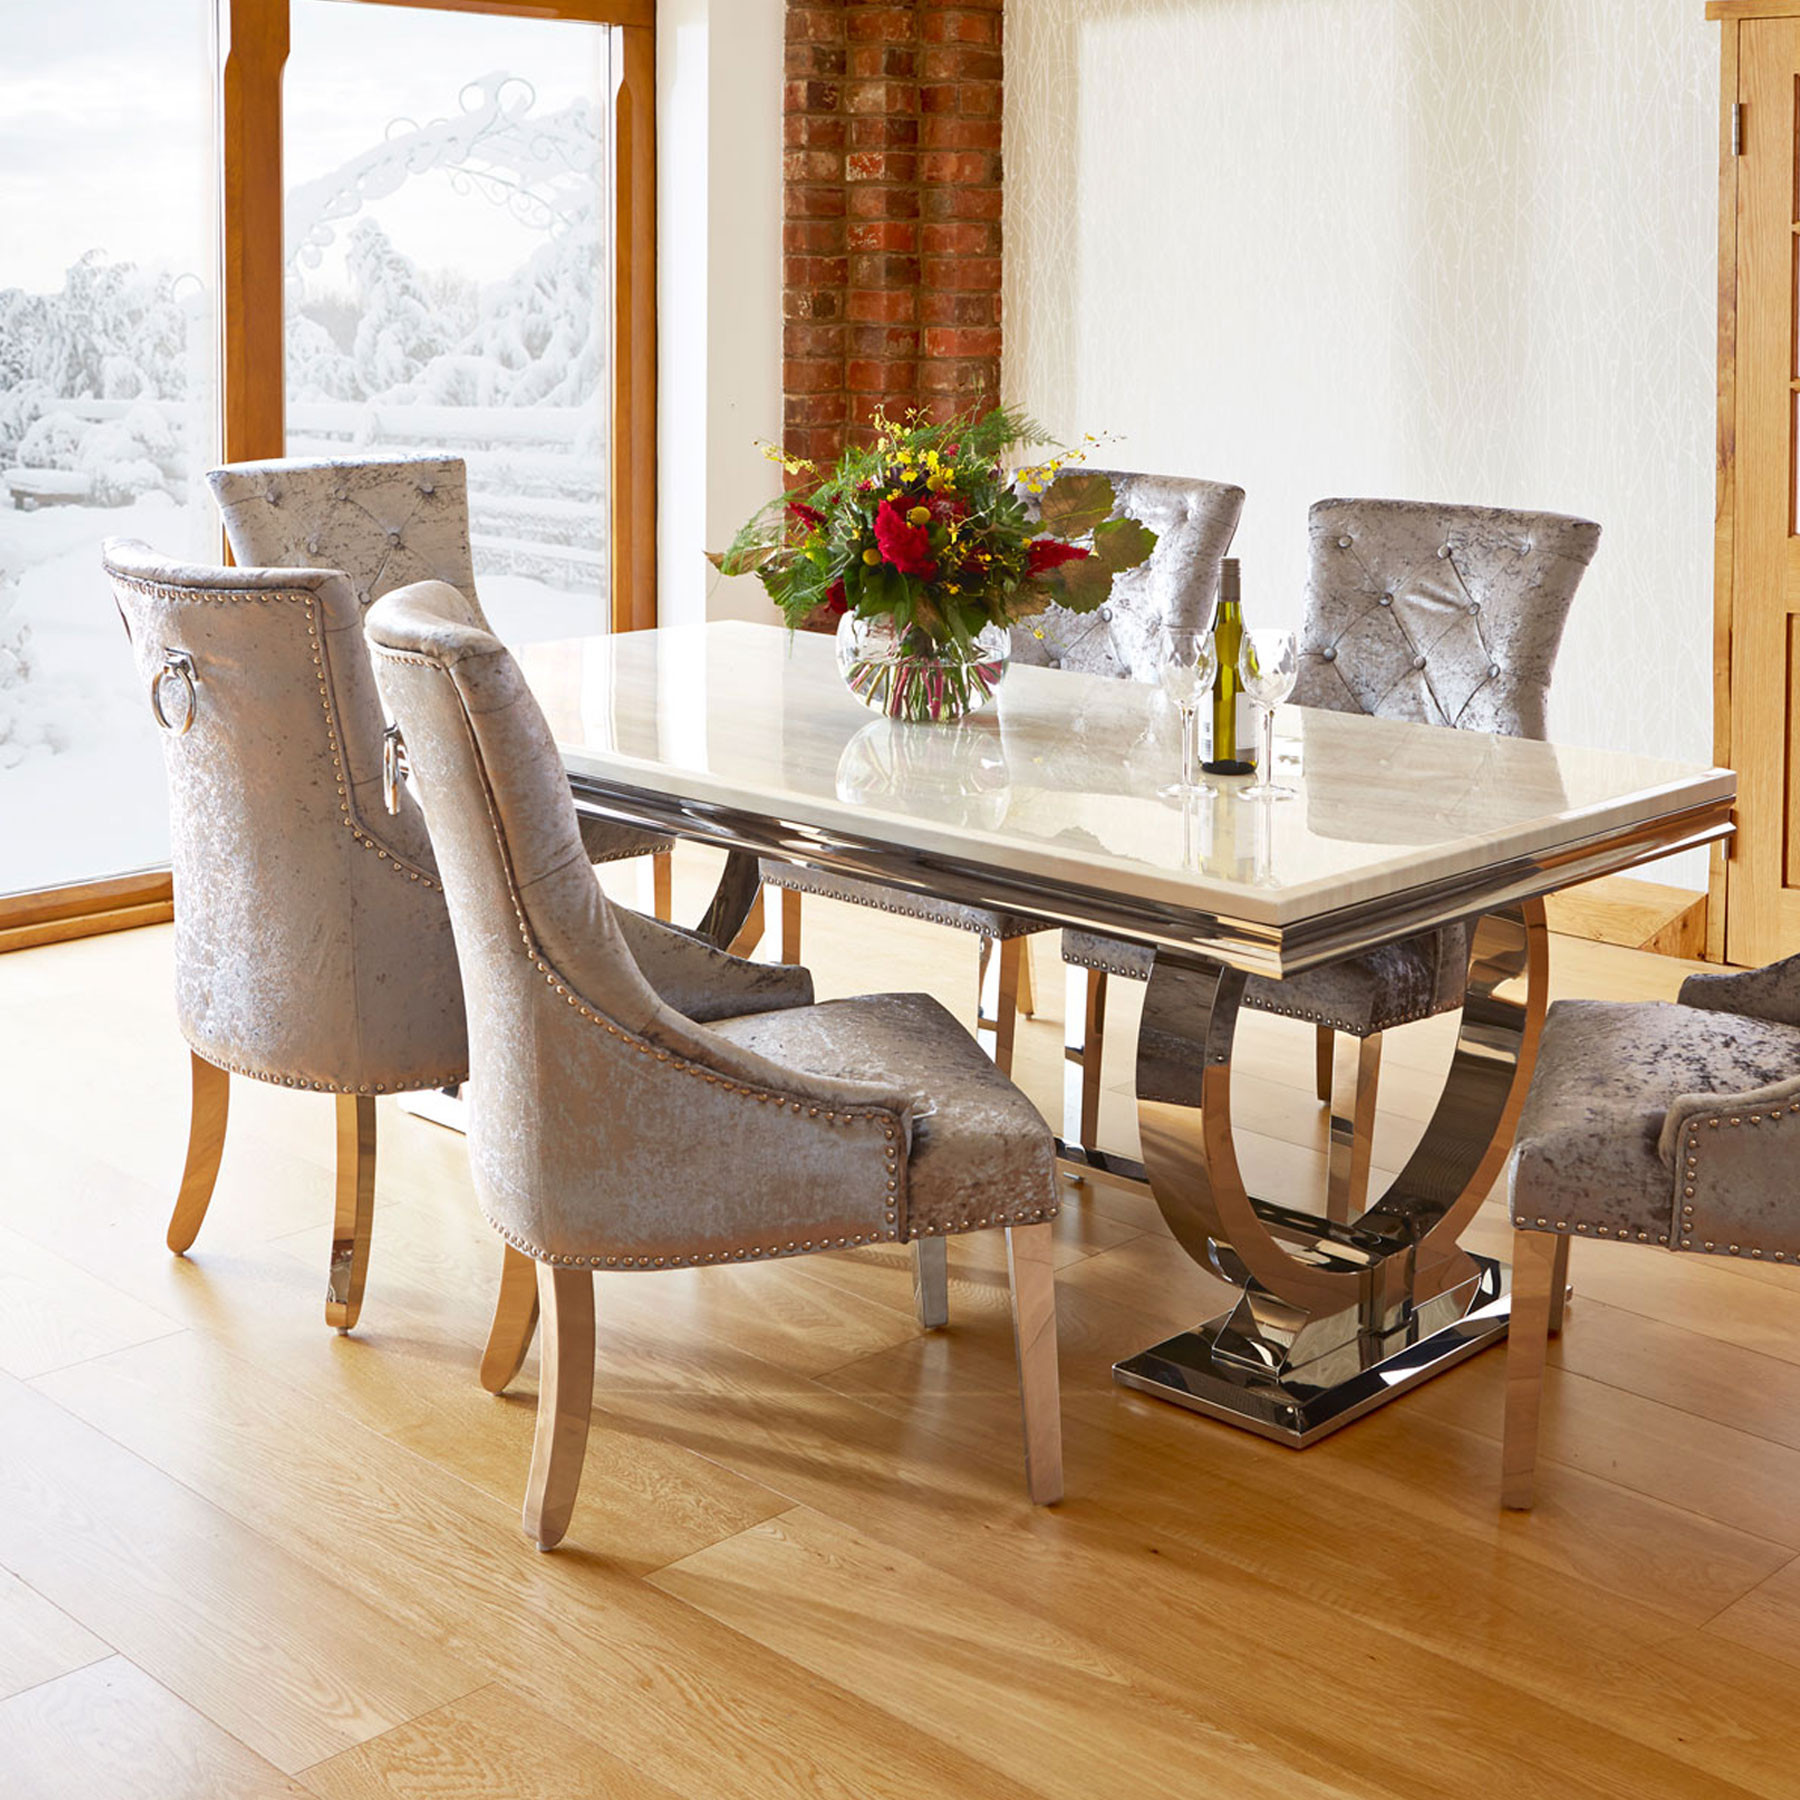 dining table and chairs Dining Tables and Chairs – All You want to know – goodworksfurniture dining table and chairs